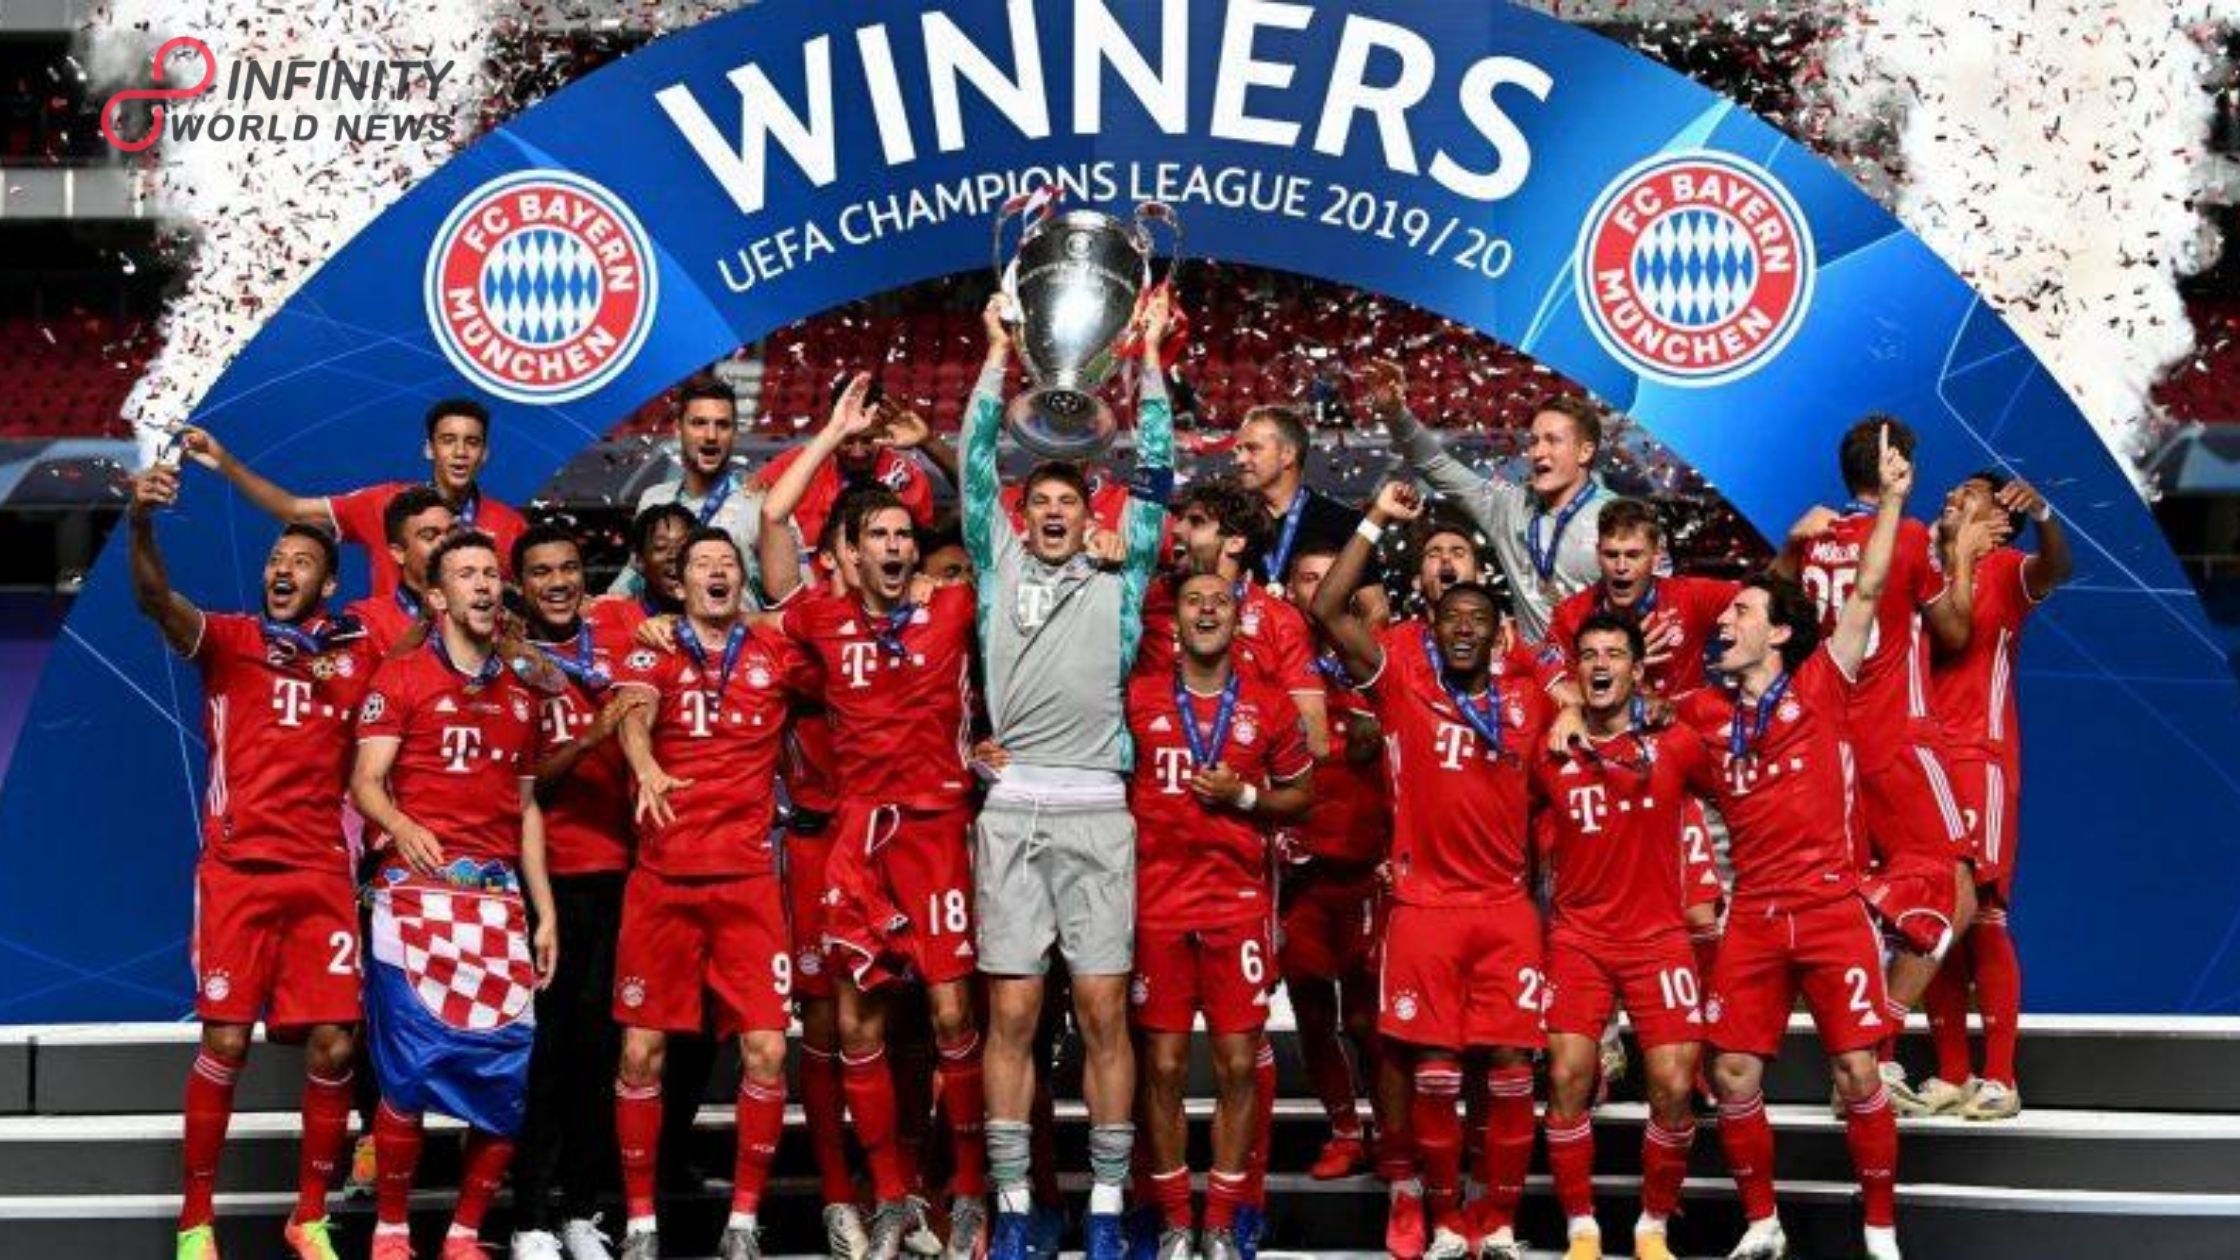 Champions League_ Bayern Munich Become Kings Of Europe For Sixth Time By Defeating PSG